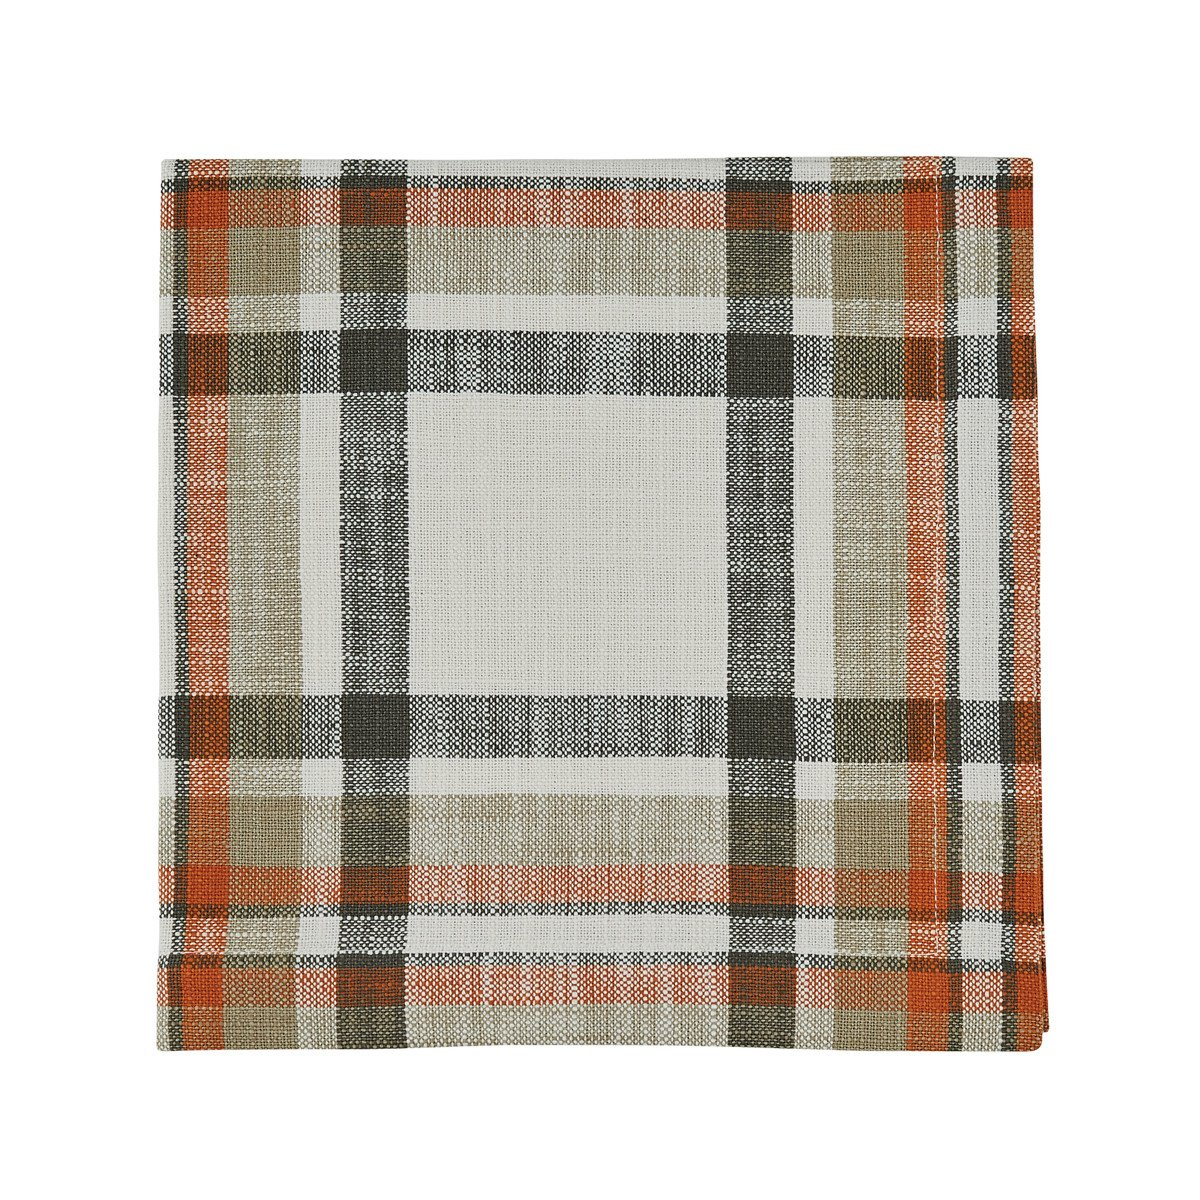 October Spice Plaid Woven Napkin